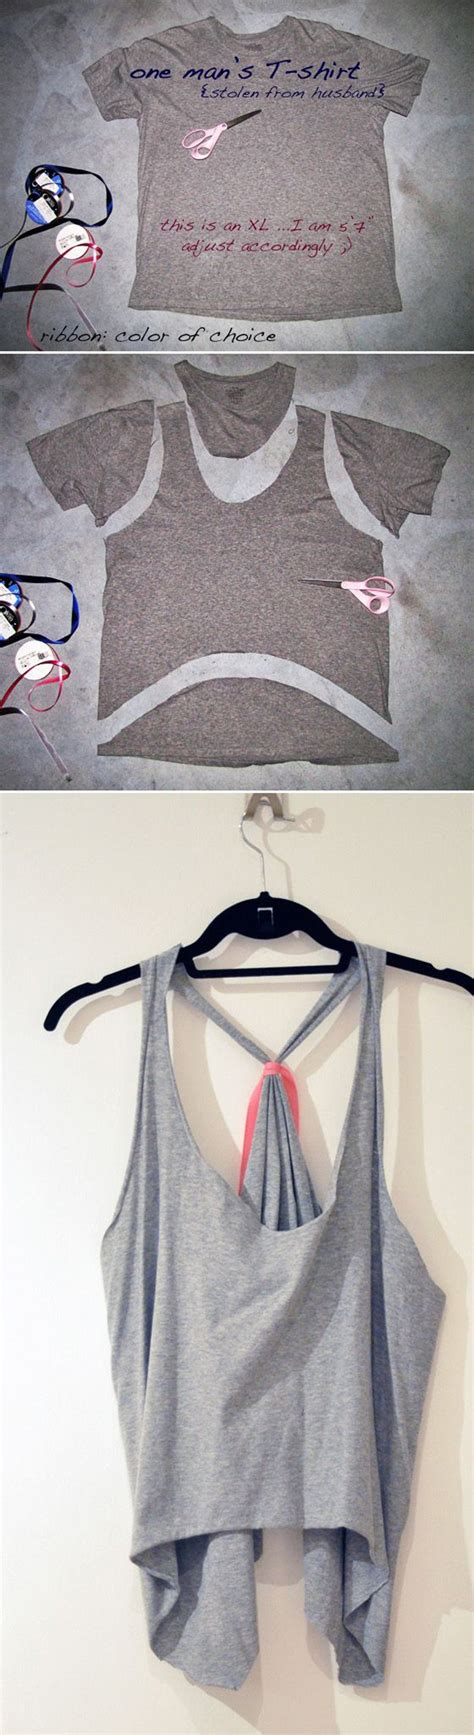 design clothes without sewing 30 diy clothes ideas sewing tutorials